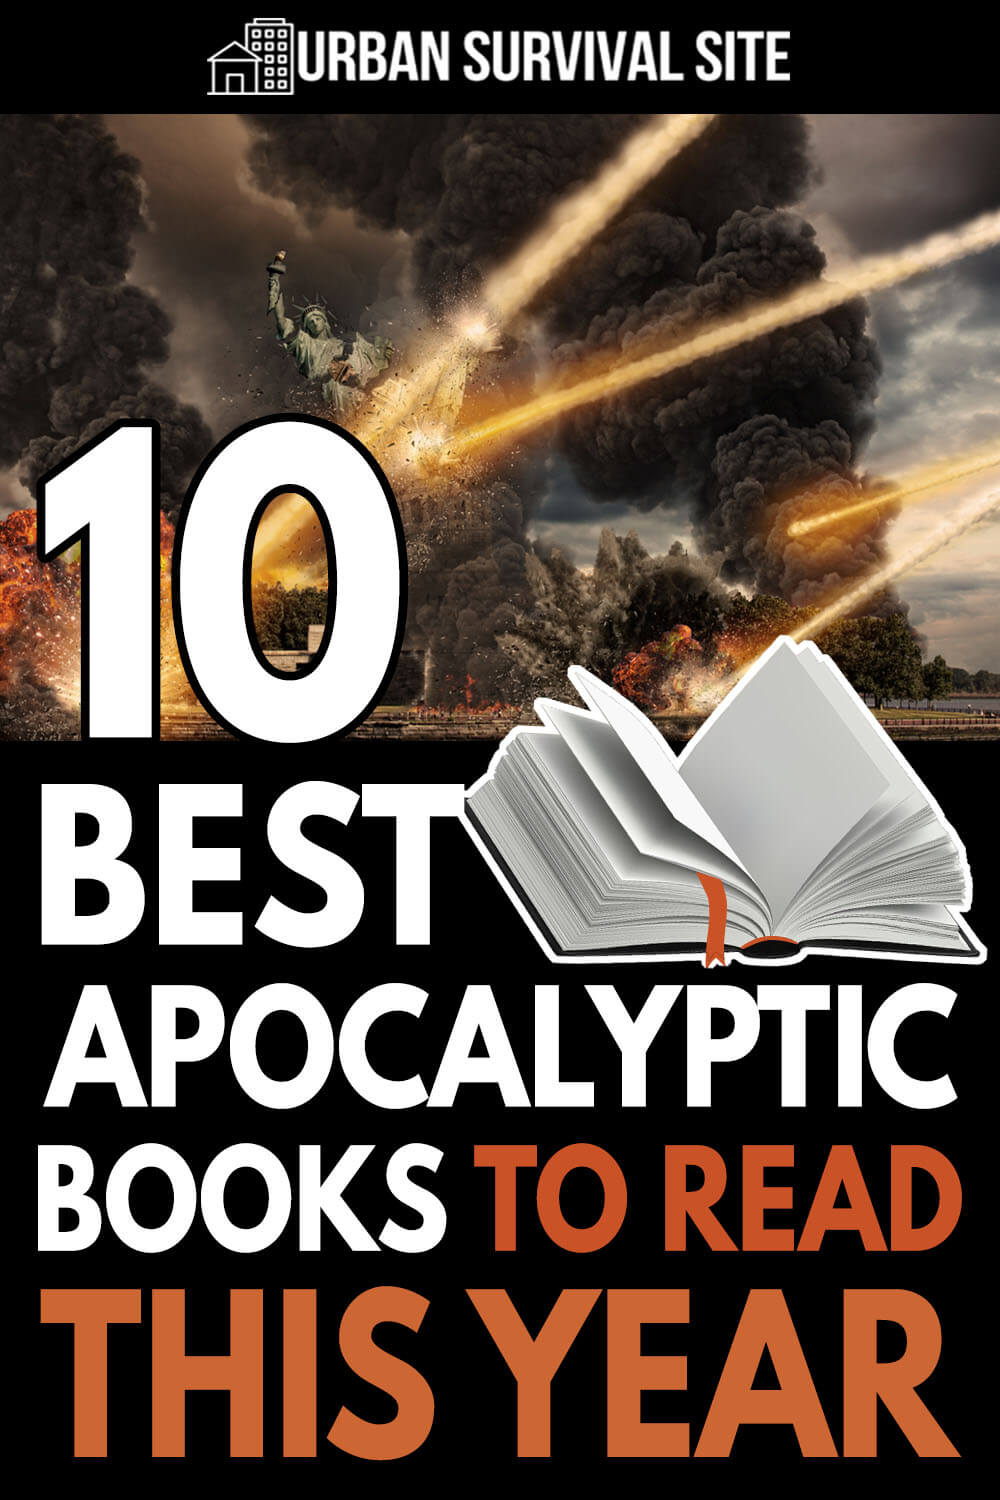 10 Best Apocalyptic Books To Read This Year